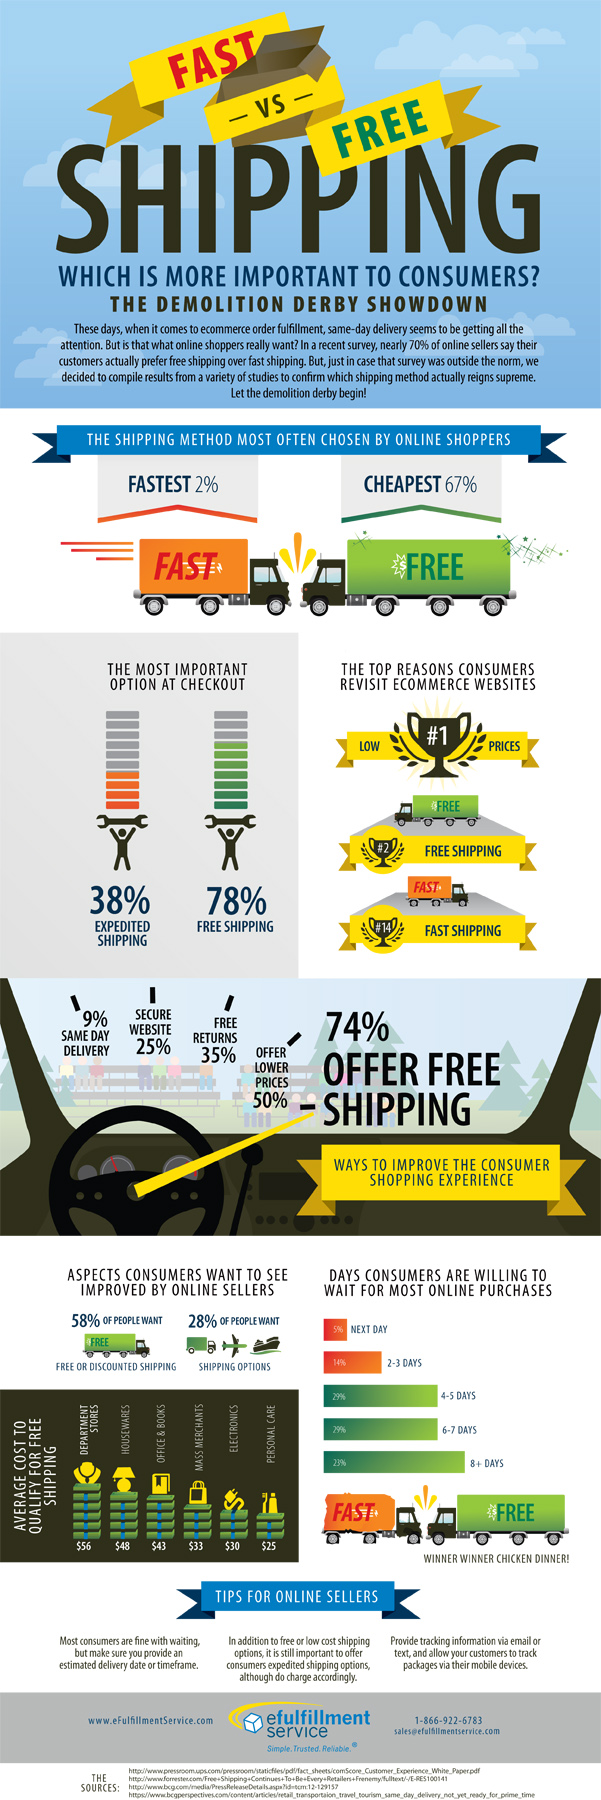 Efulfillment Service Free Shipping Infographic